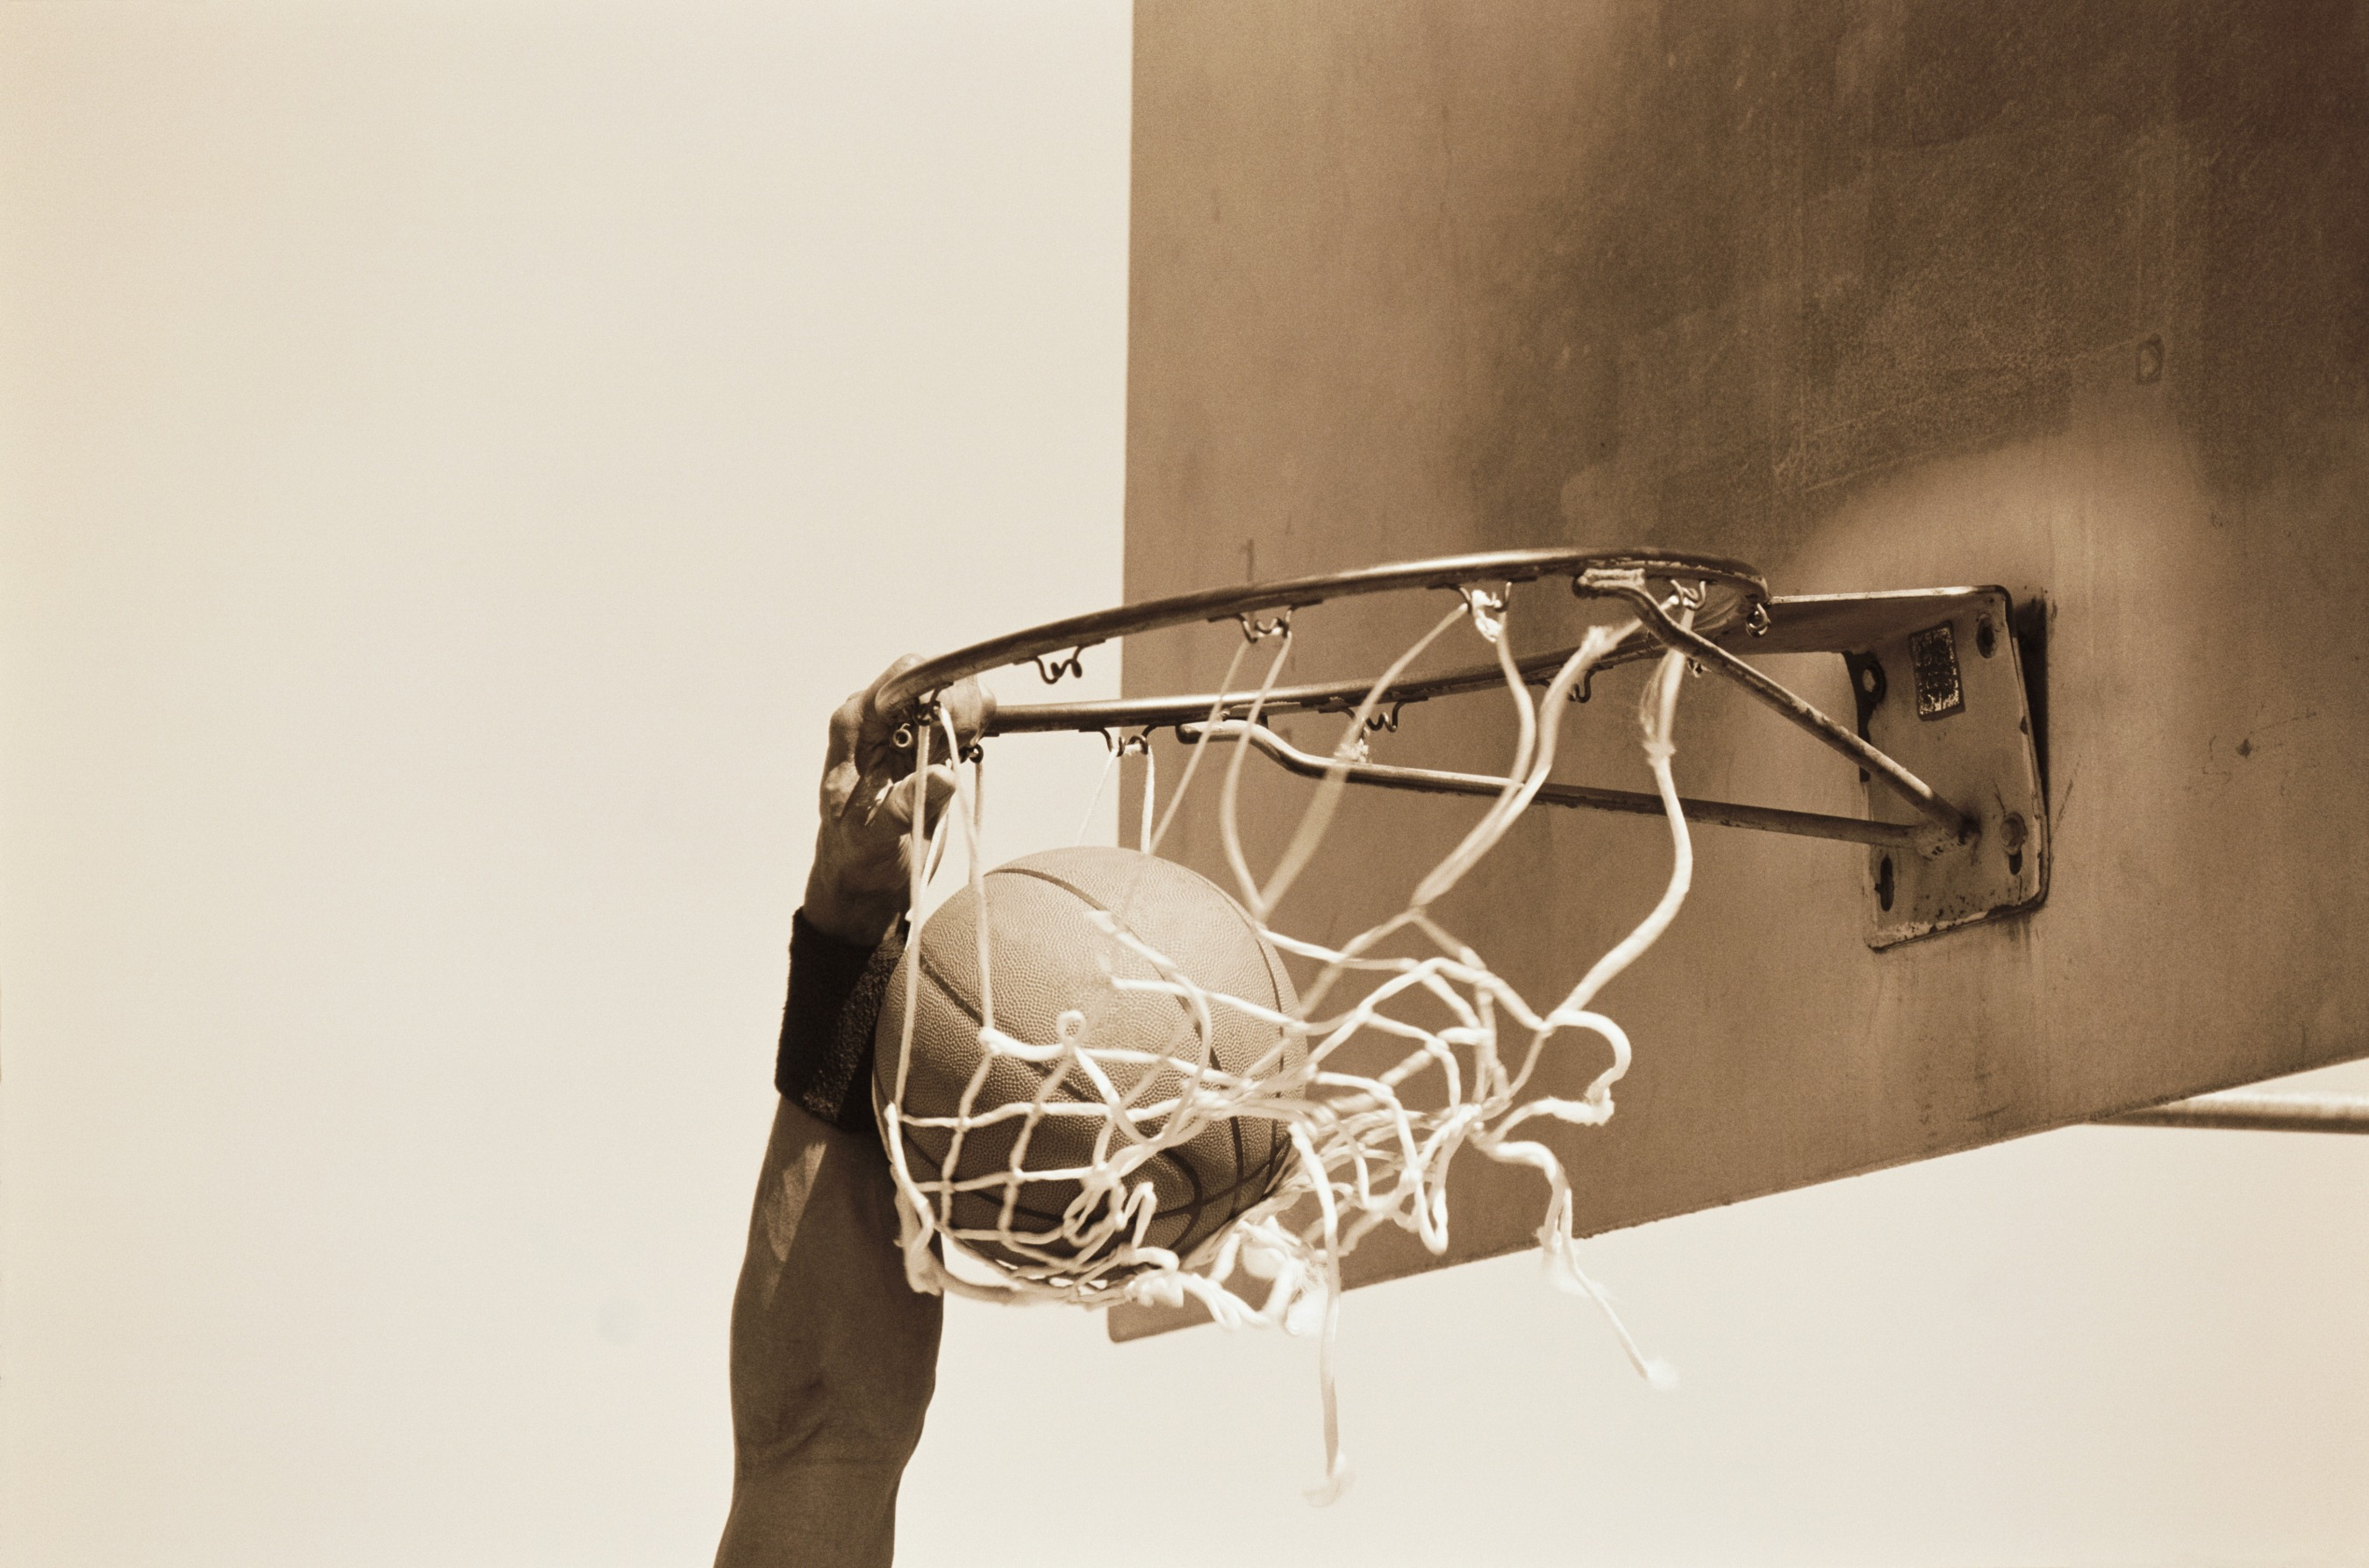 40c44ec1b1023 I m 6-foot-2 and can t dunk